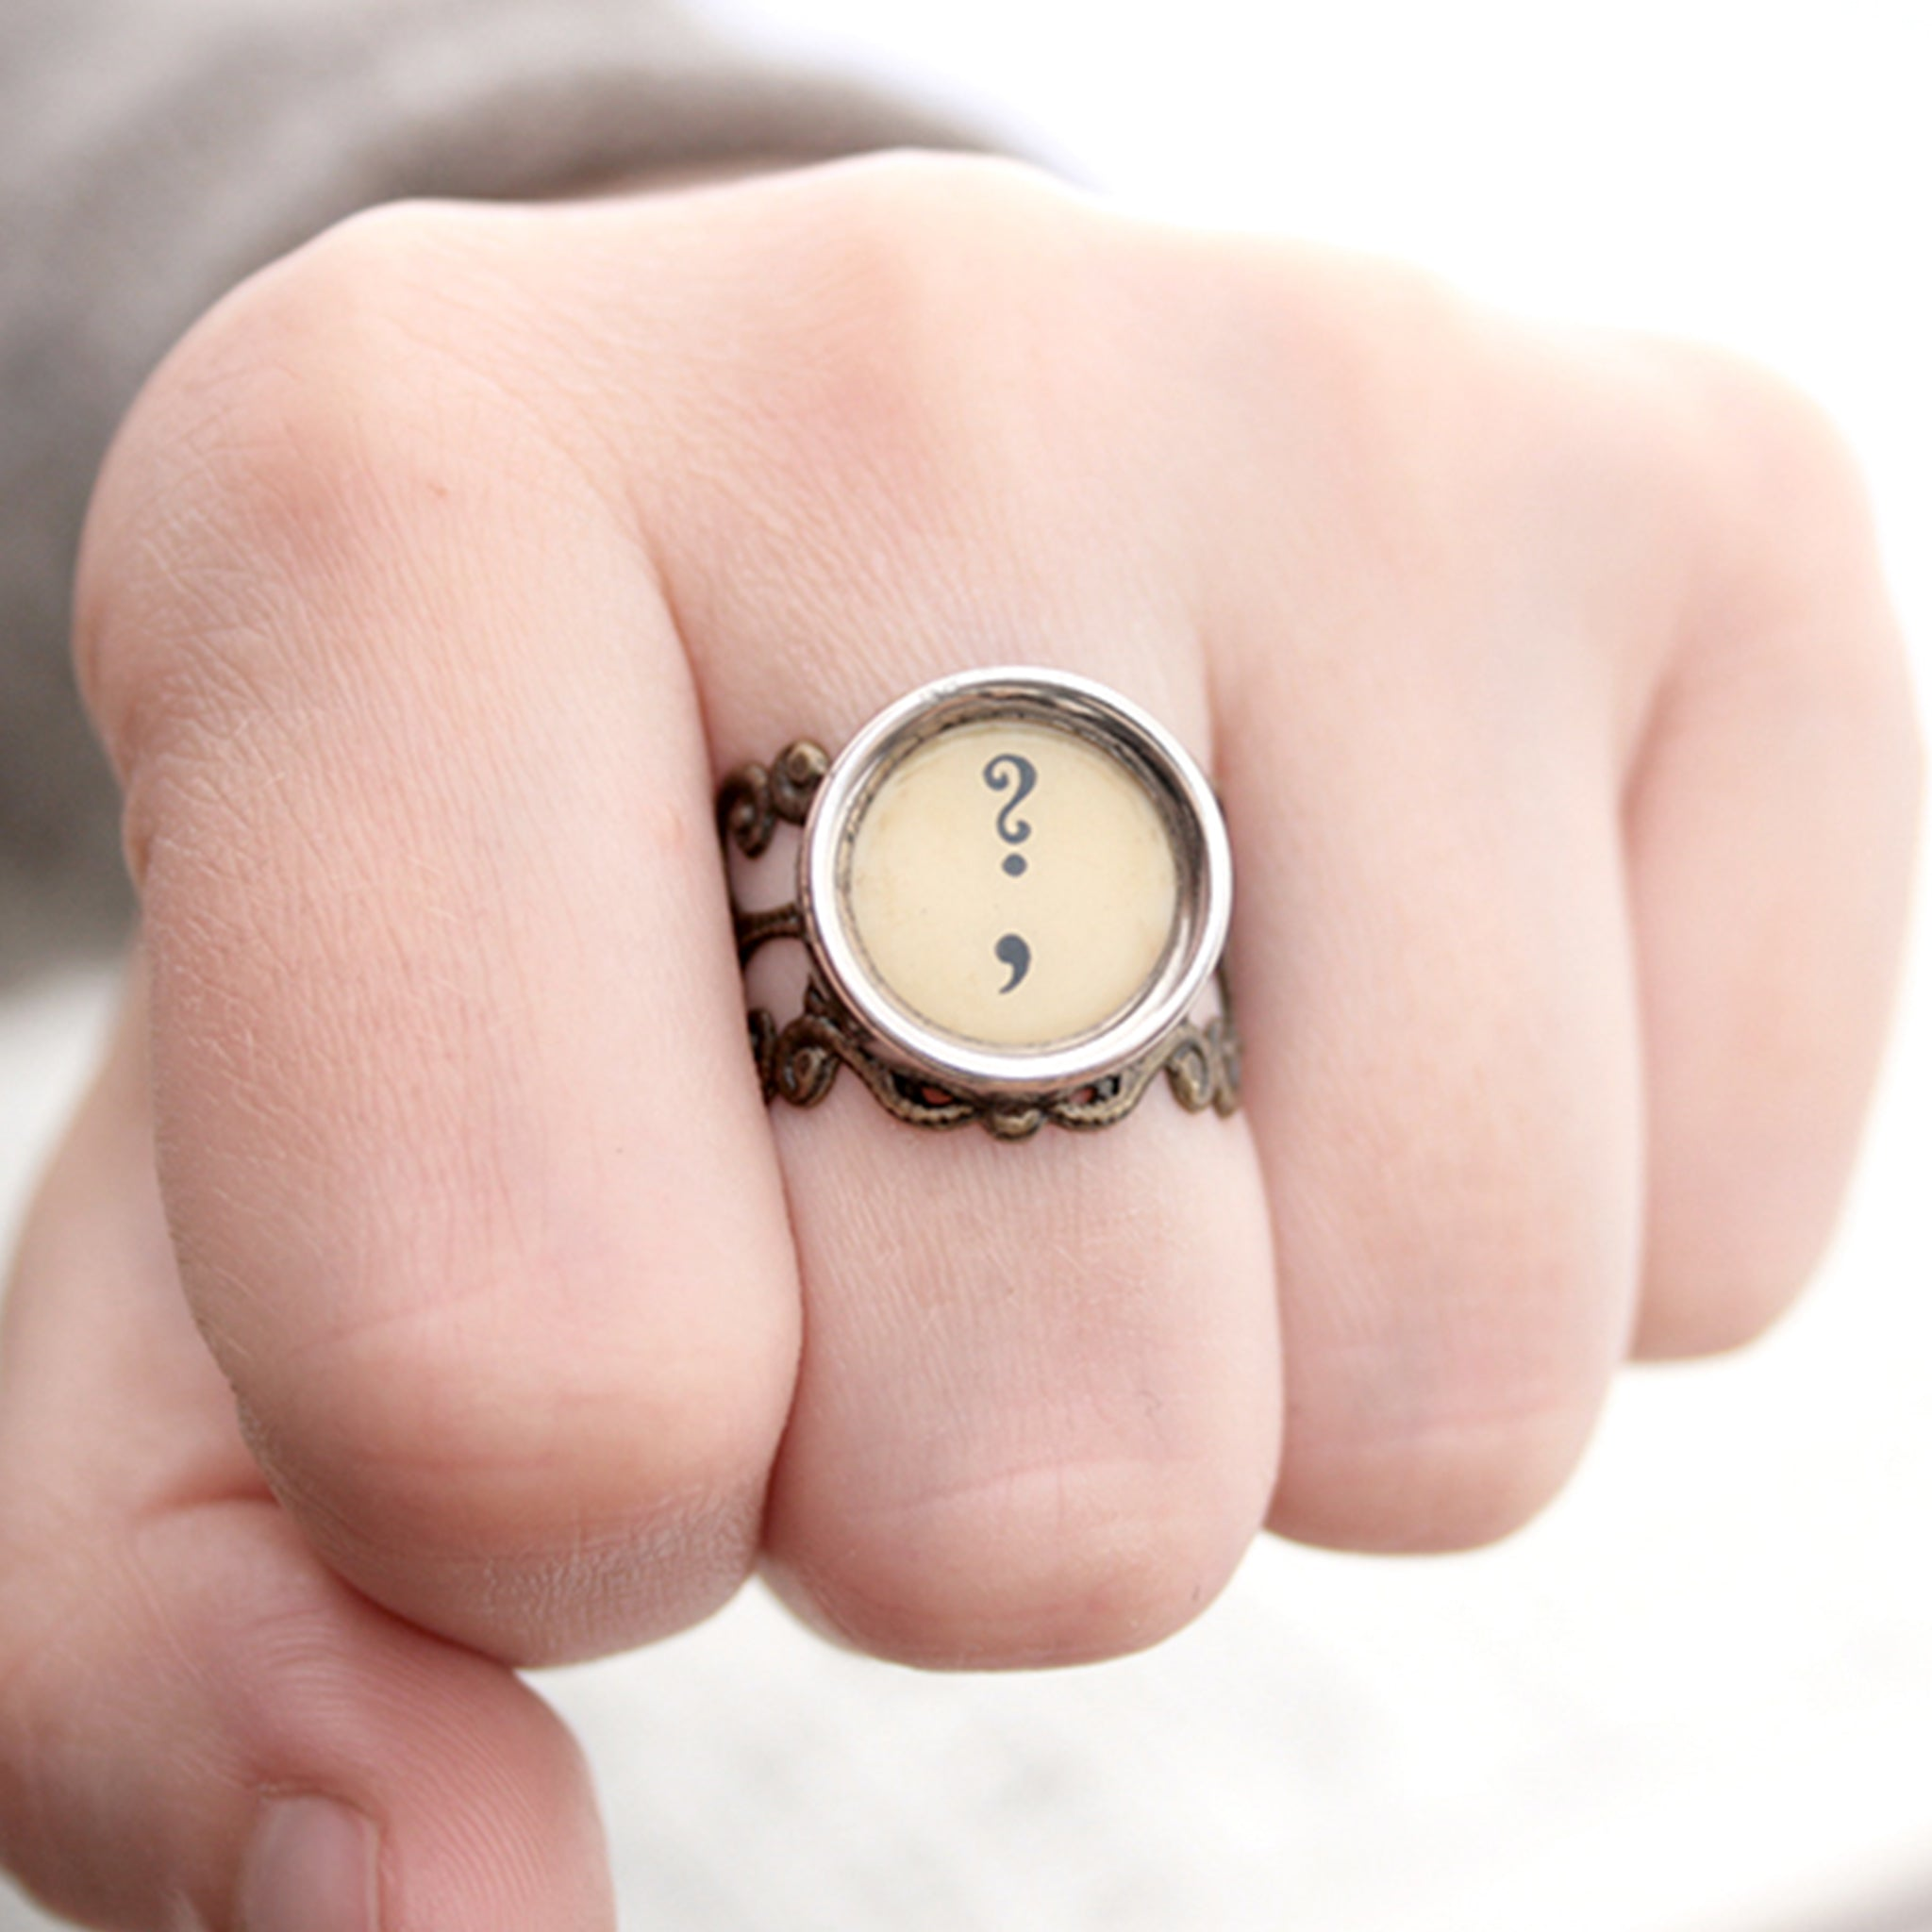 Ring with question mark and comma made of  typewriter key in ivory color worn on hand